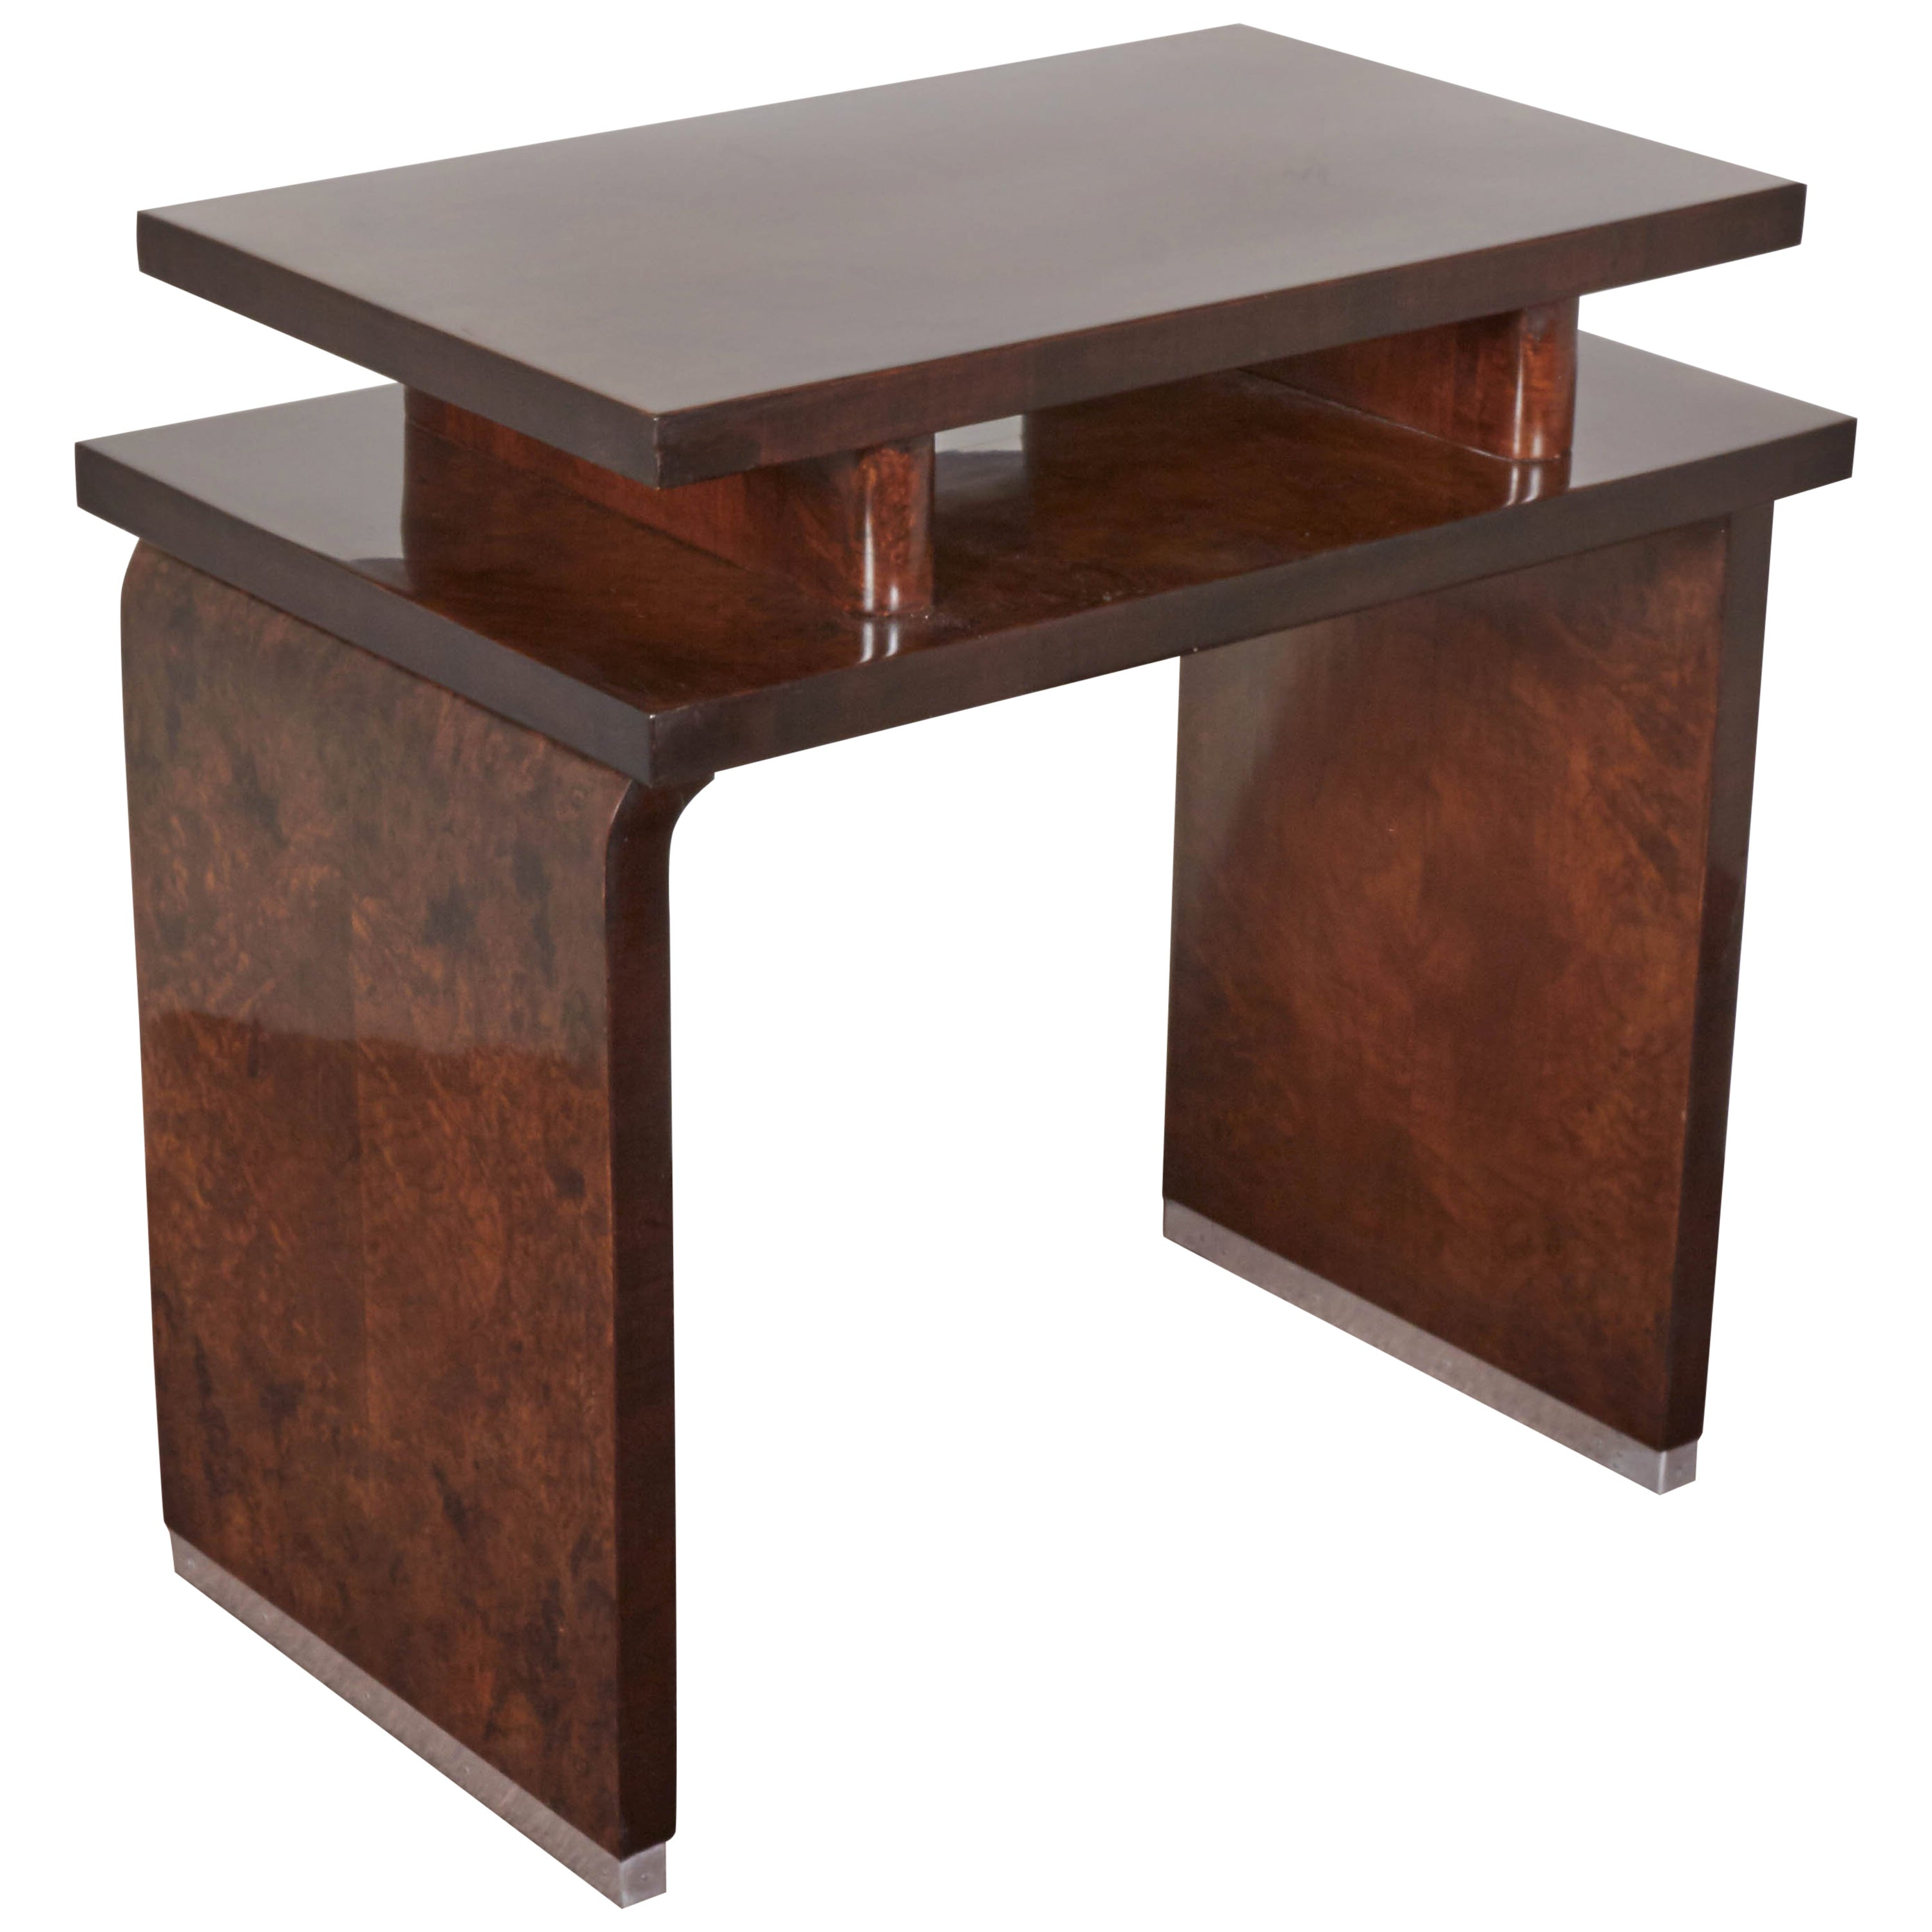 French Art Deco Burl Walnut Occasional or Side Table